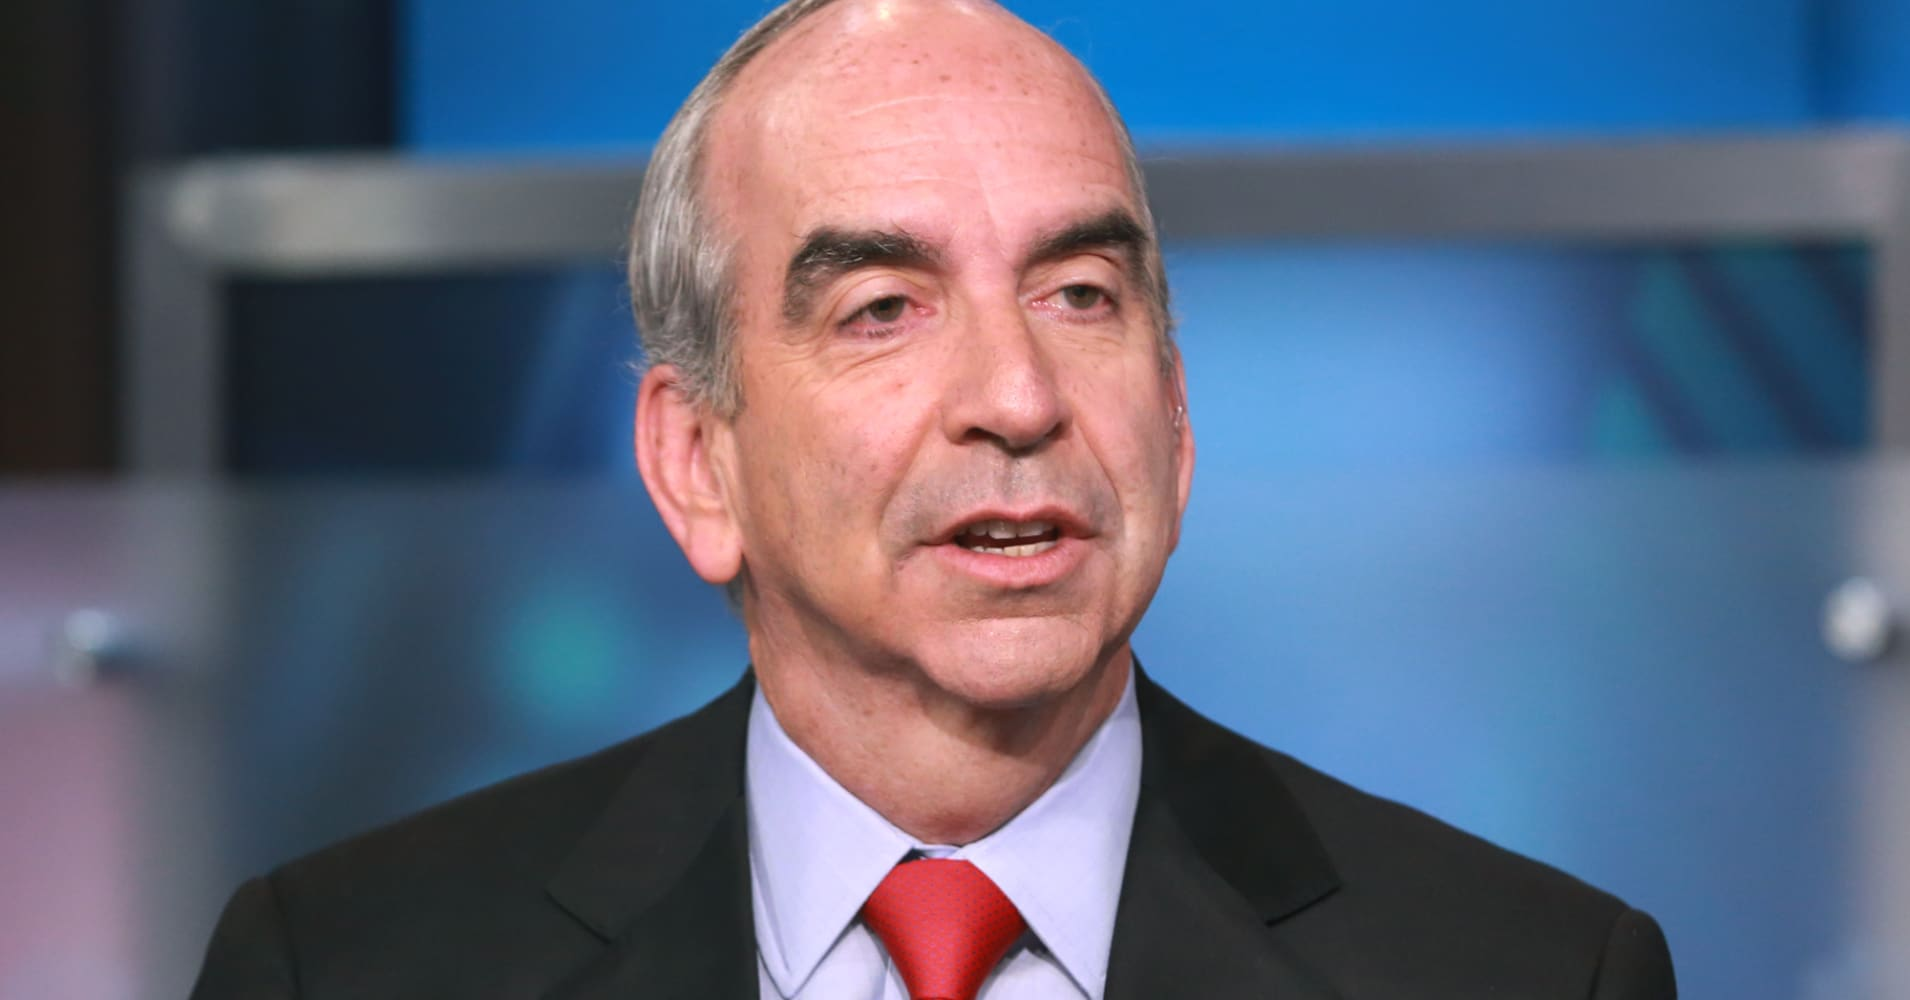 Trump blasted OPEC this past year. Hess CEO says the oil producer group deserves praise